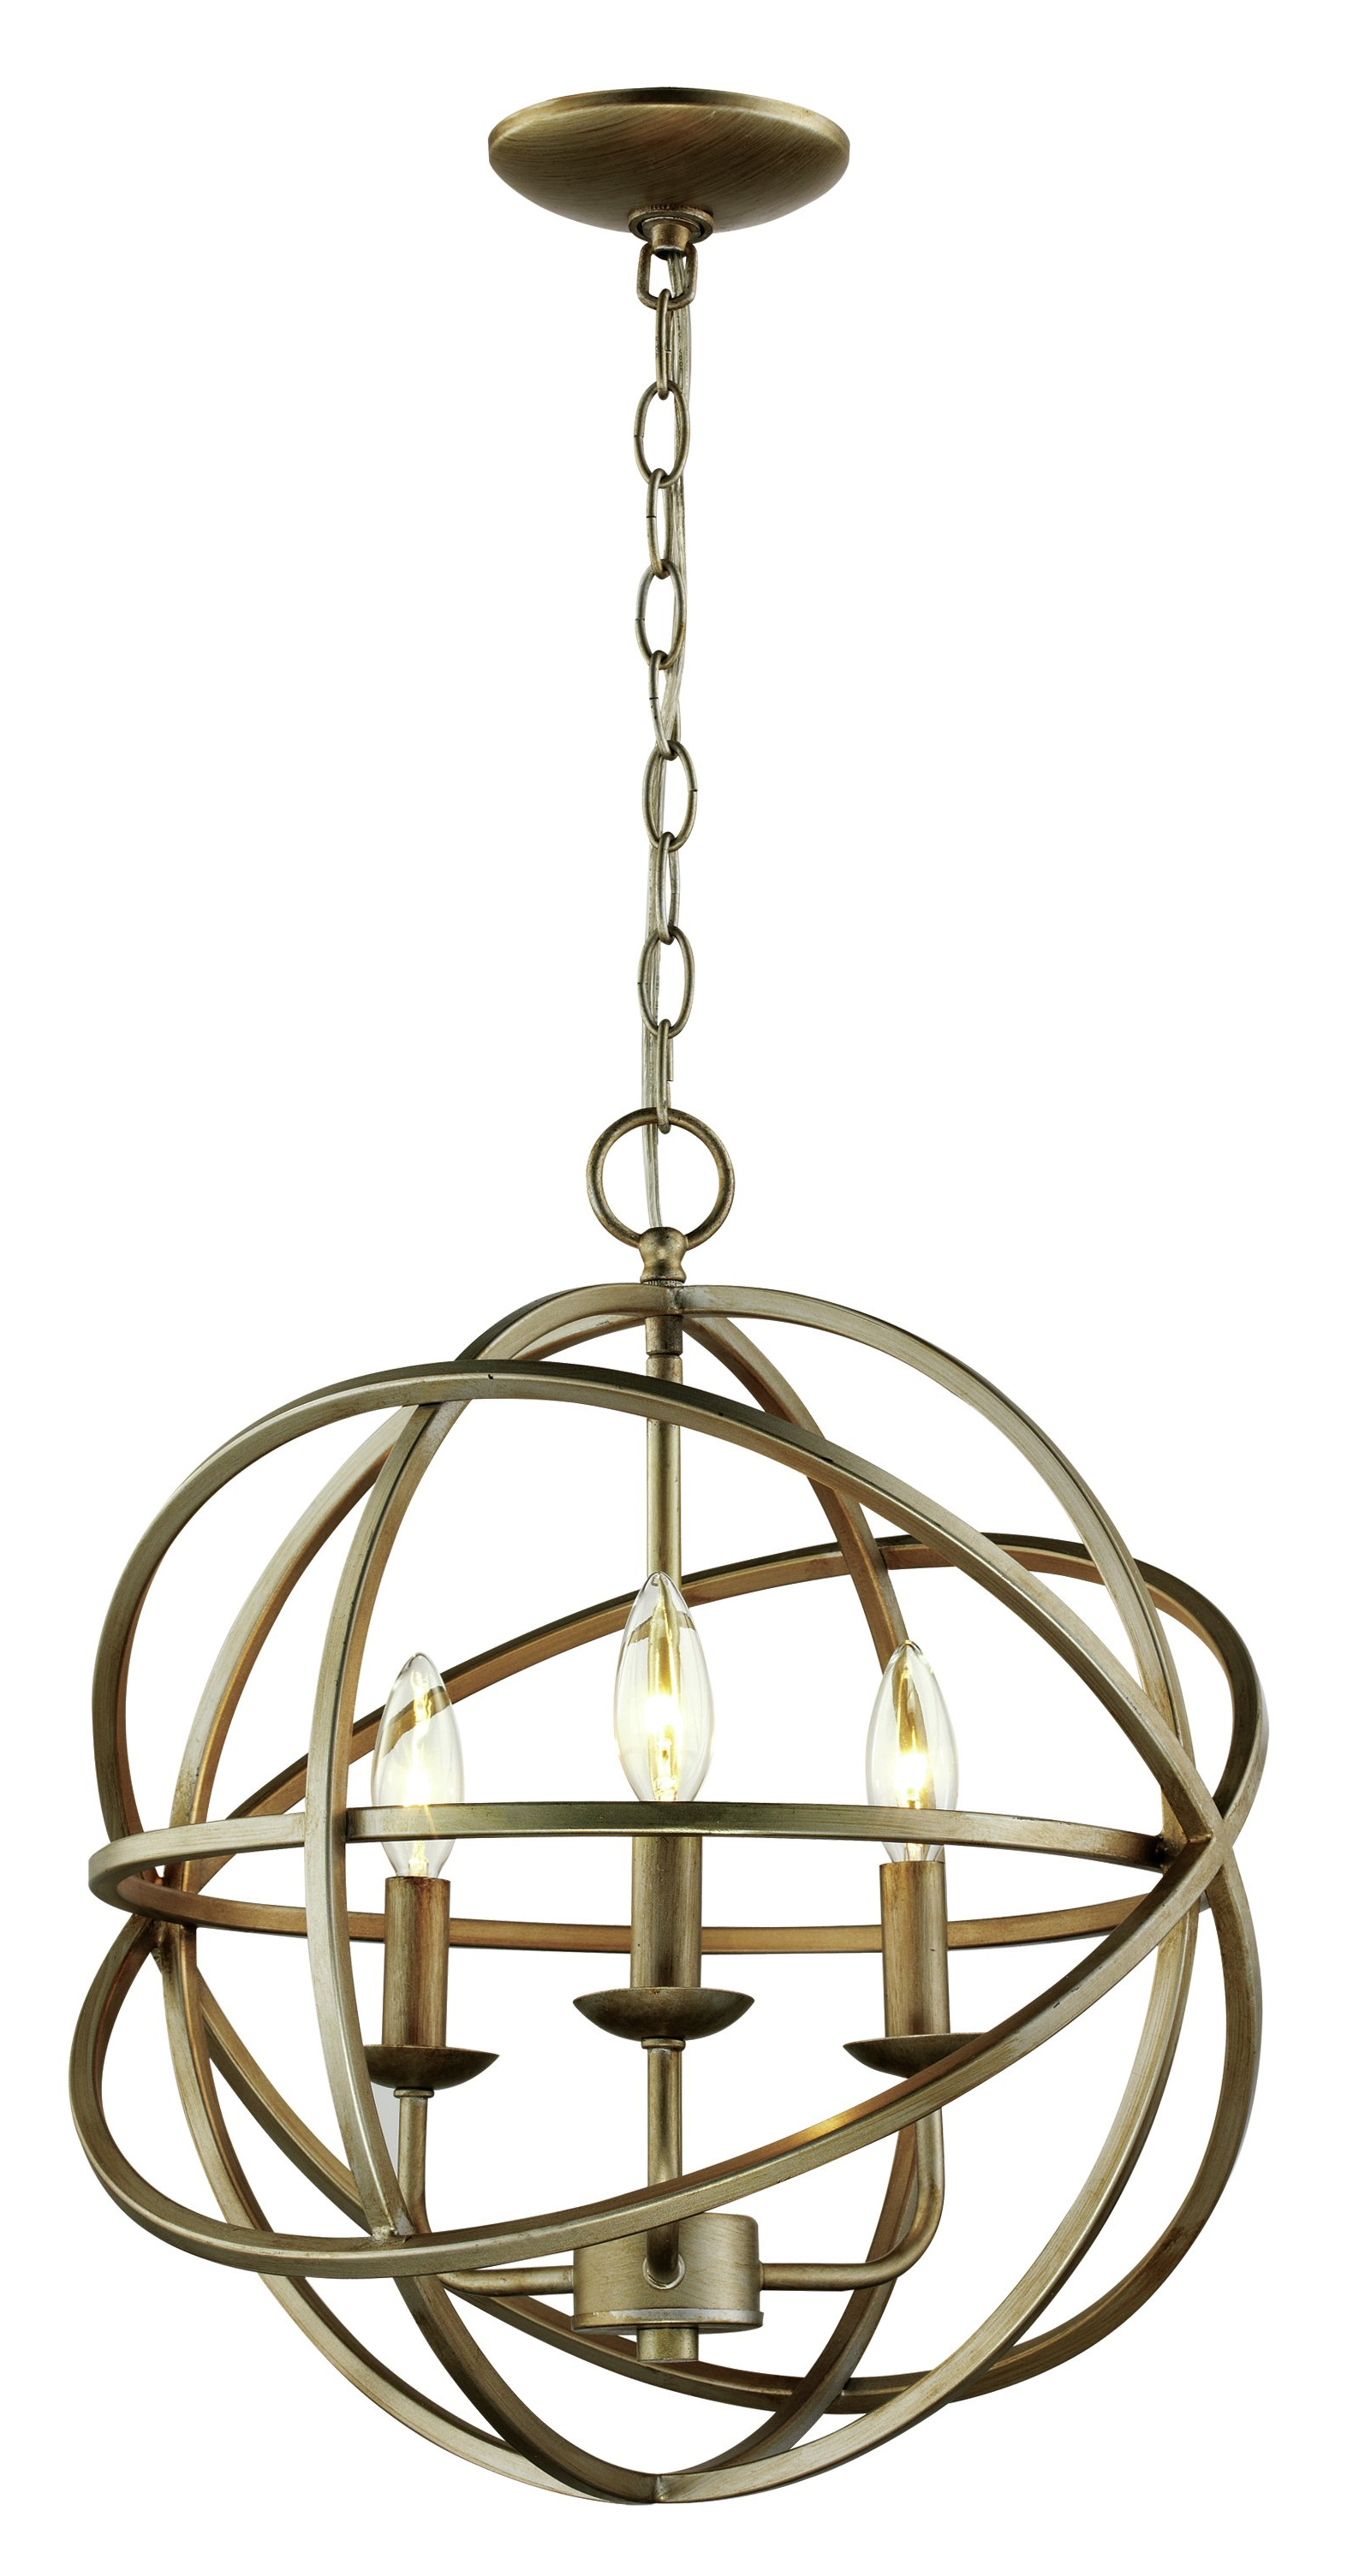 Shipststour 3 Light Globe Chandeliers With Regard To Widely Used Baitz 3 Light Globe Chandelier (View 24 of 25)